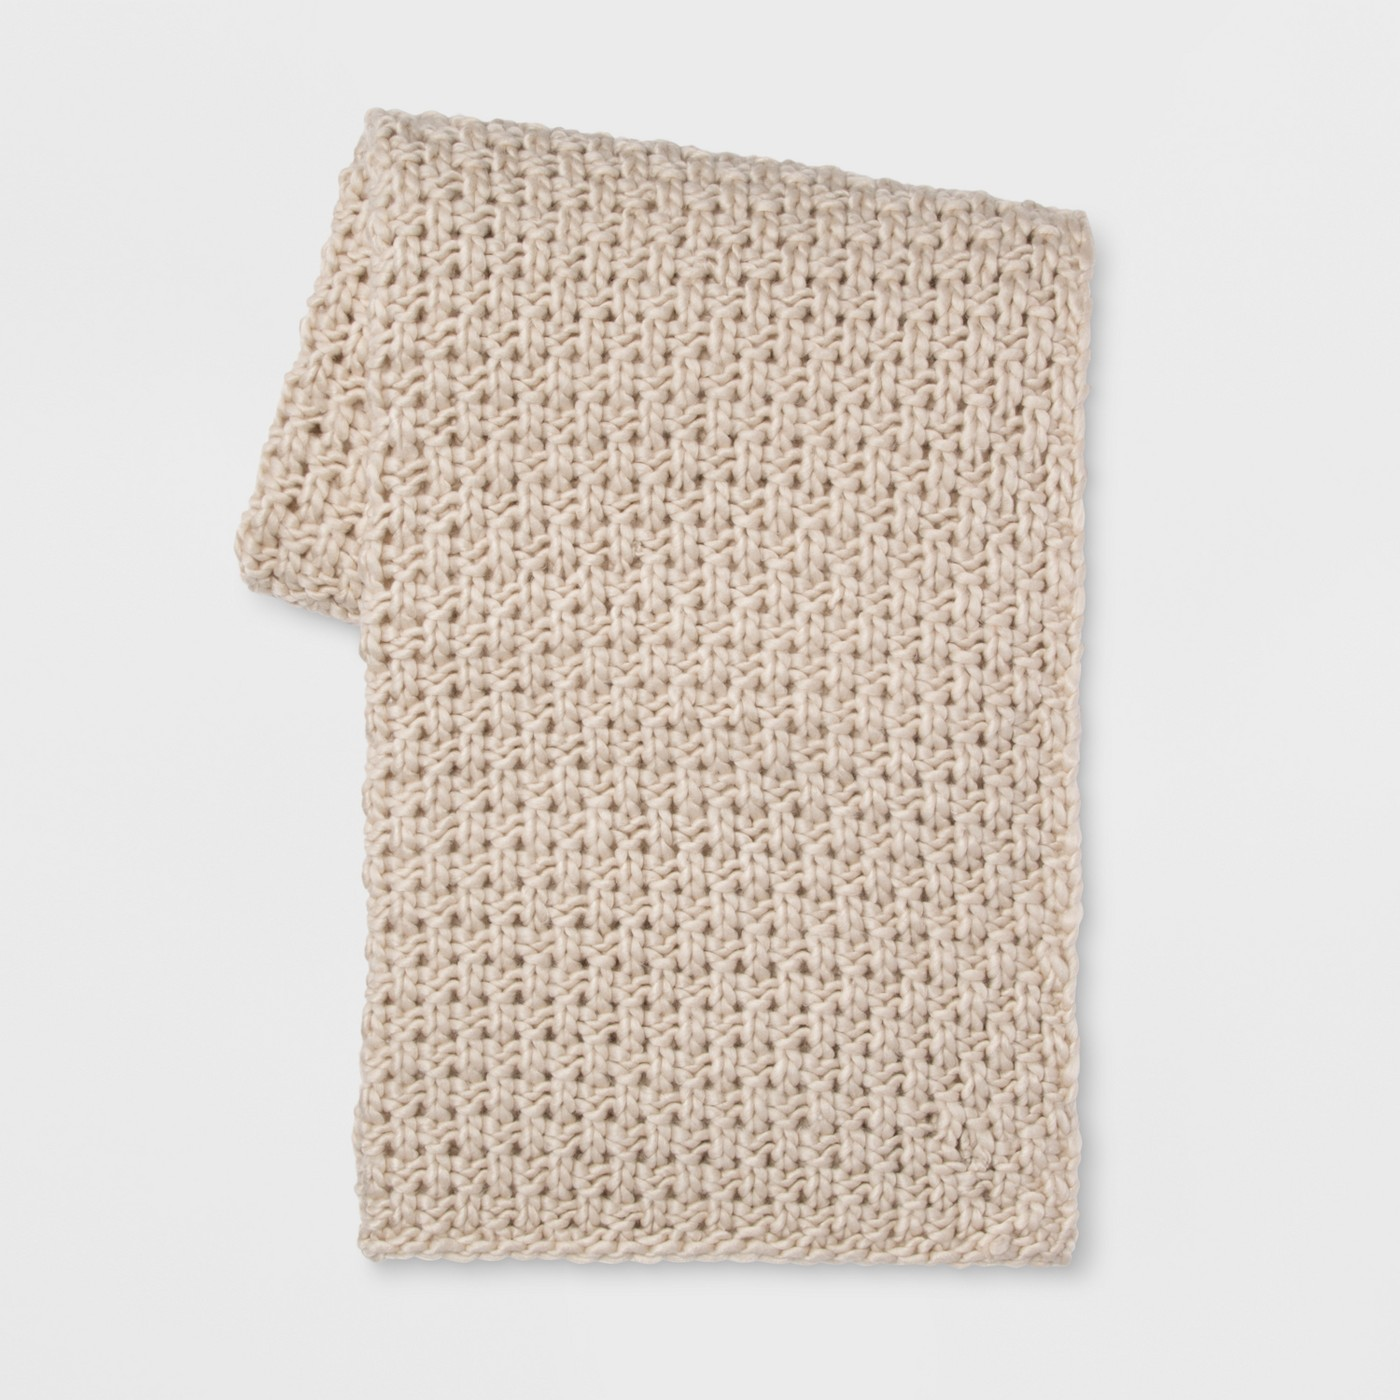 Chunky Knit Throw - Threshold - image 1 of 5